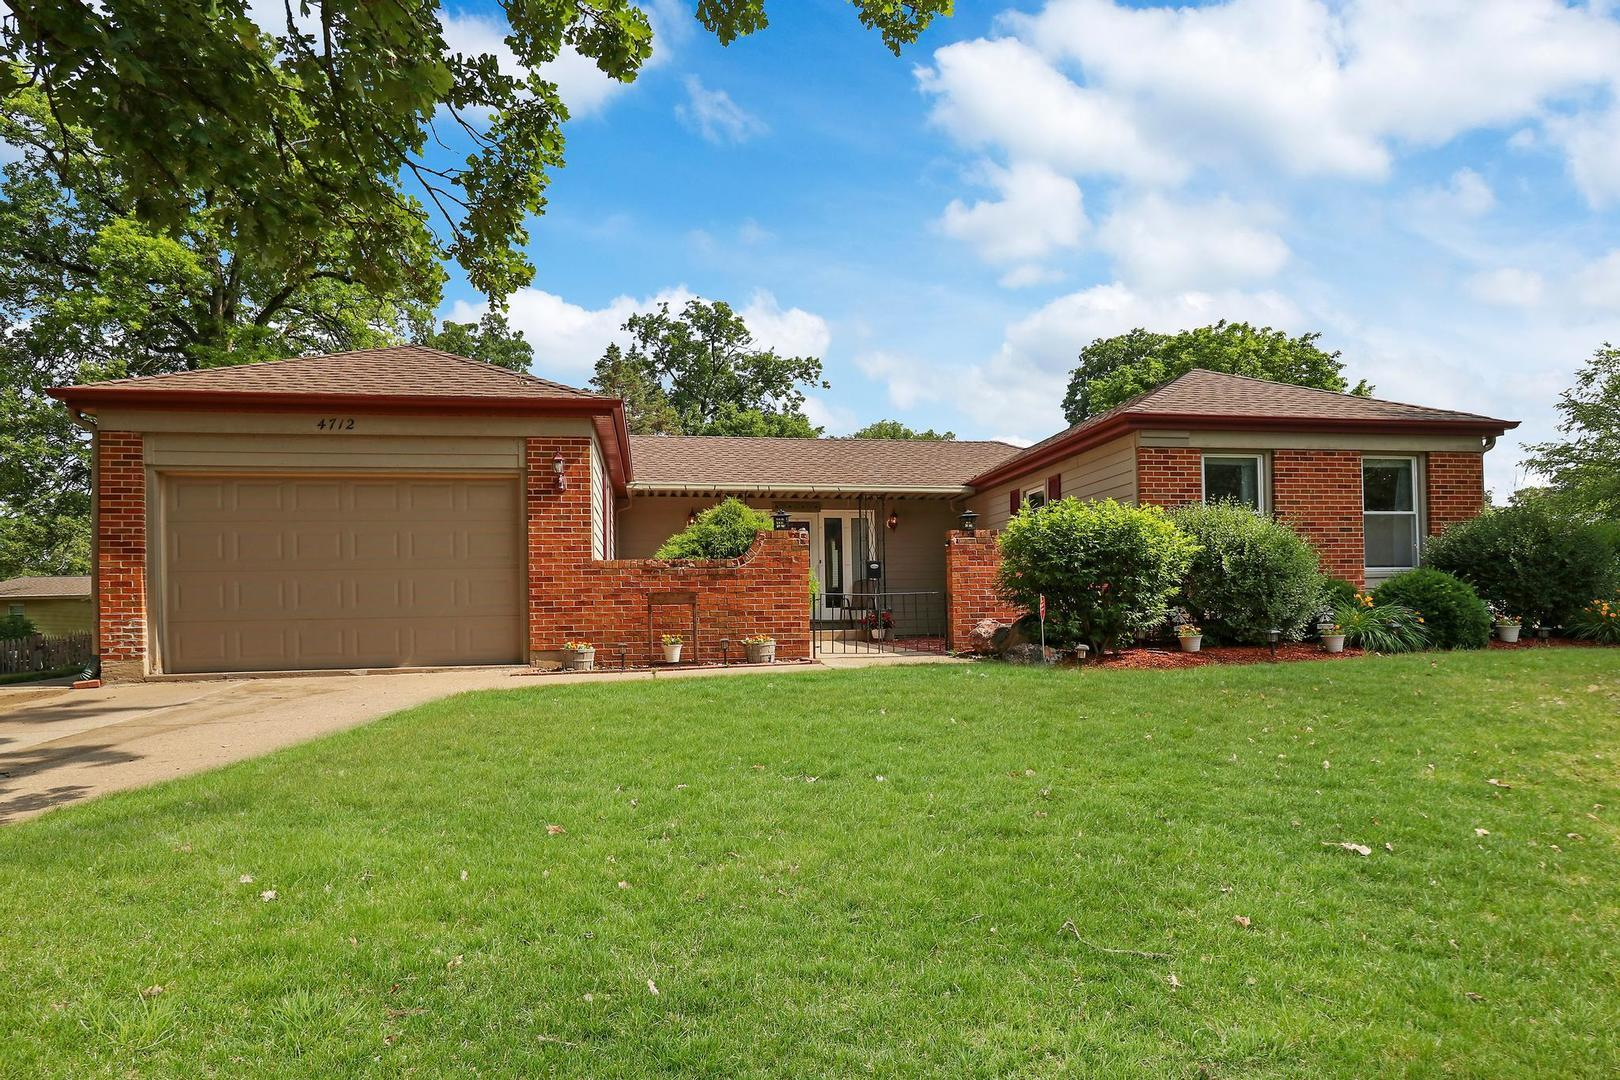 4712 Chesterfield Drive, McHenry, IL 60050 - #: 11145411